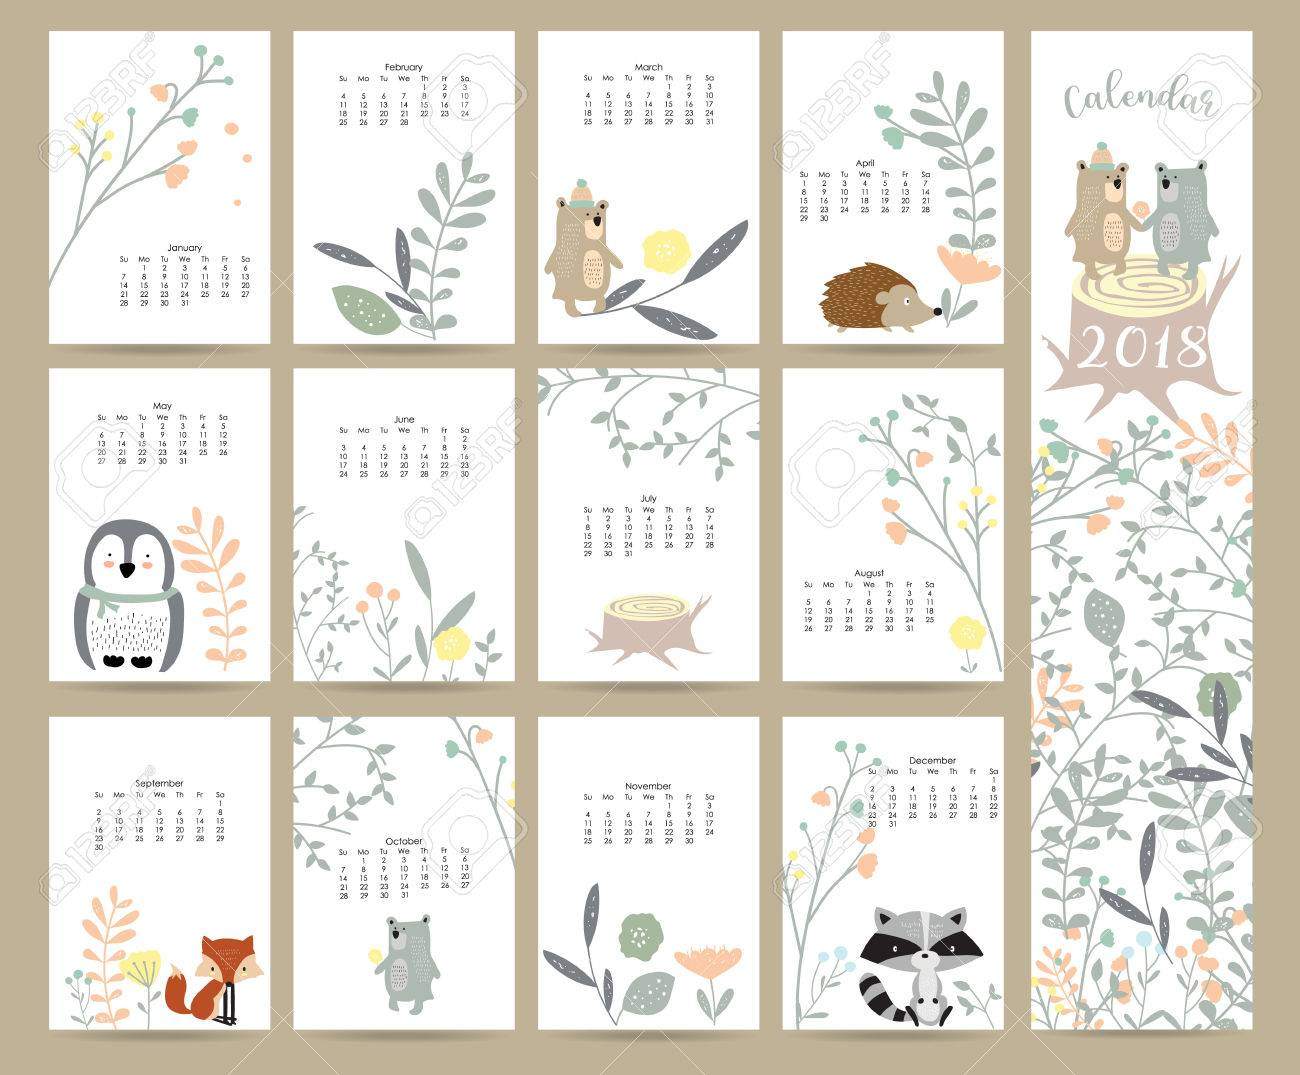 photo relating to Cute Monthly Calendar Printable titled Colourful adorable regular monthly calendar 2018 with wild,fox,go through,skunk,leaf,stump,flower,penguin..